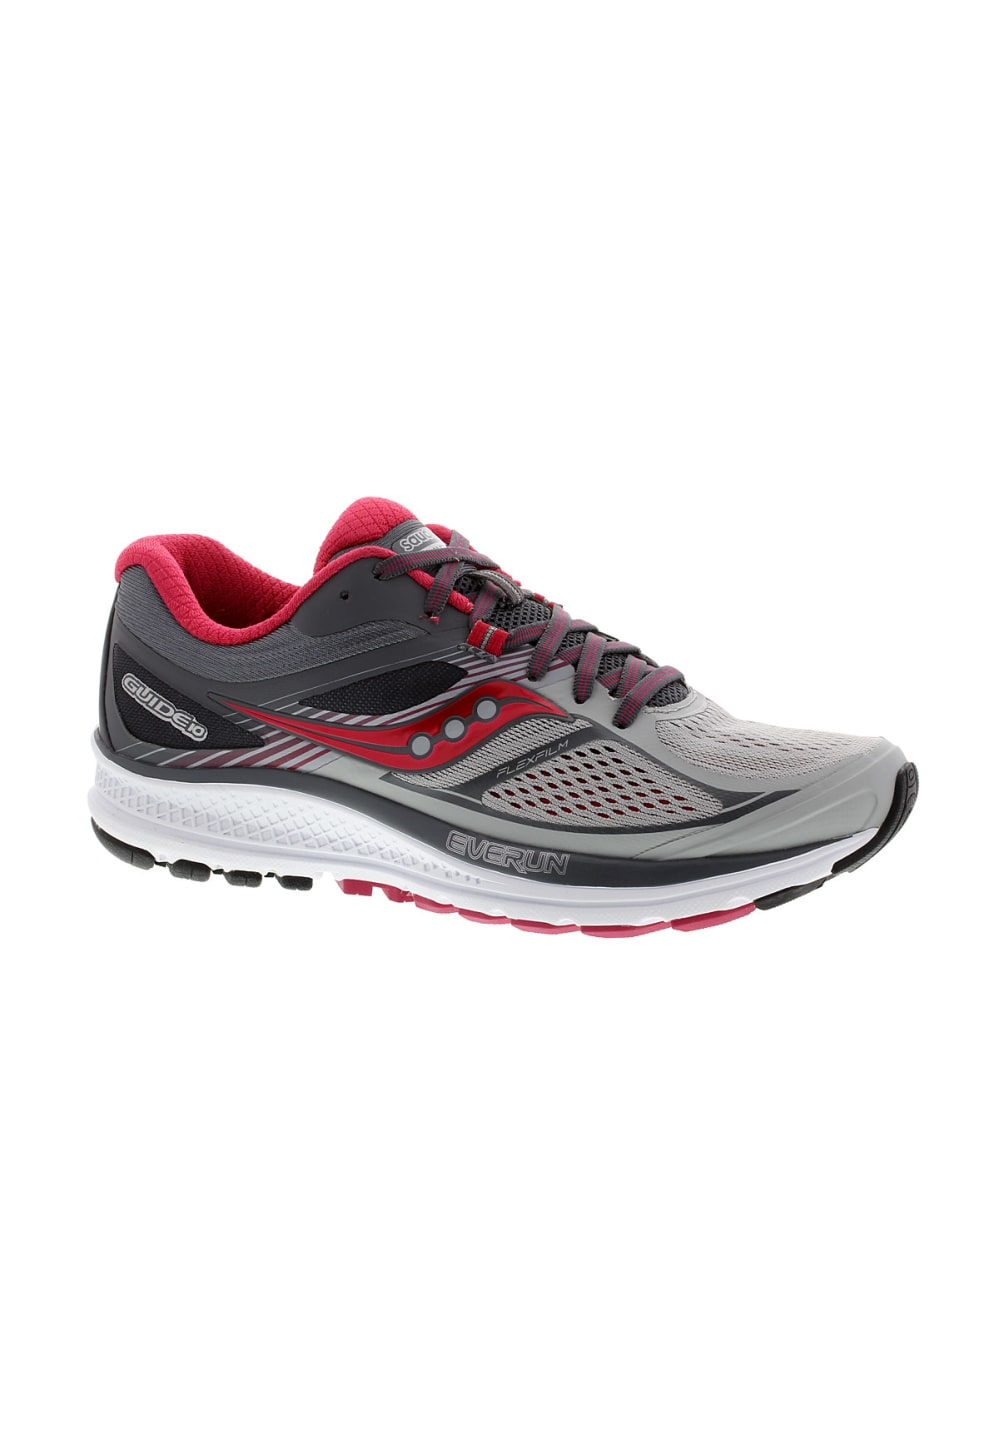 678e93071e Saucony Guide 10 - Running shoes for Women - Grey